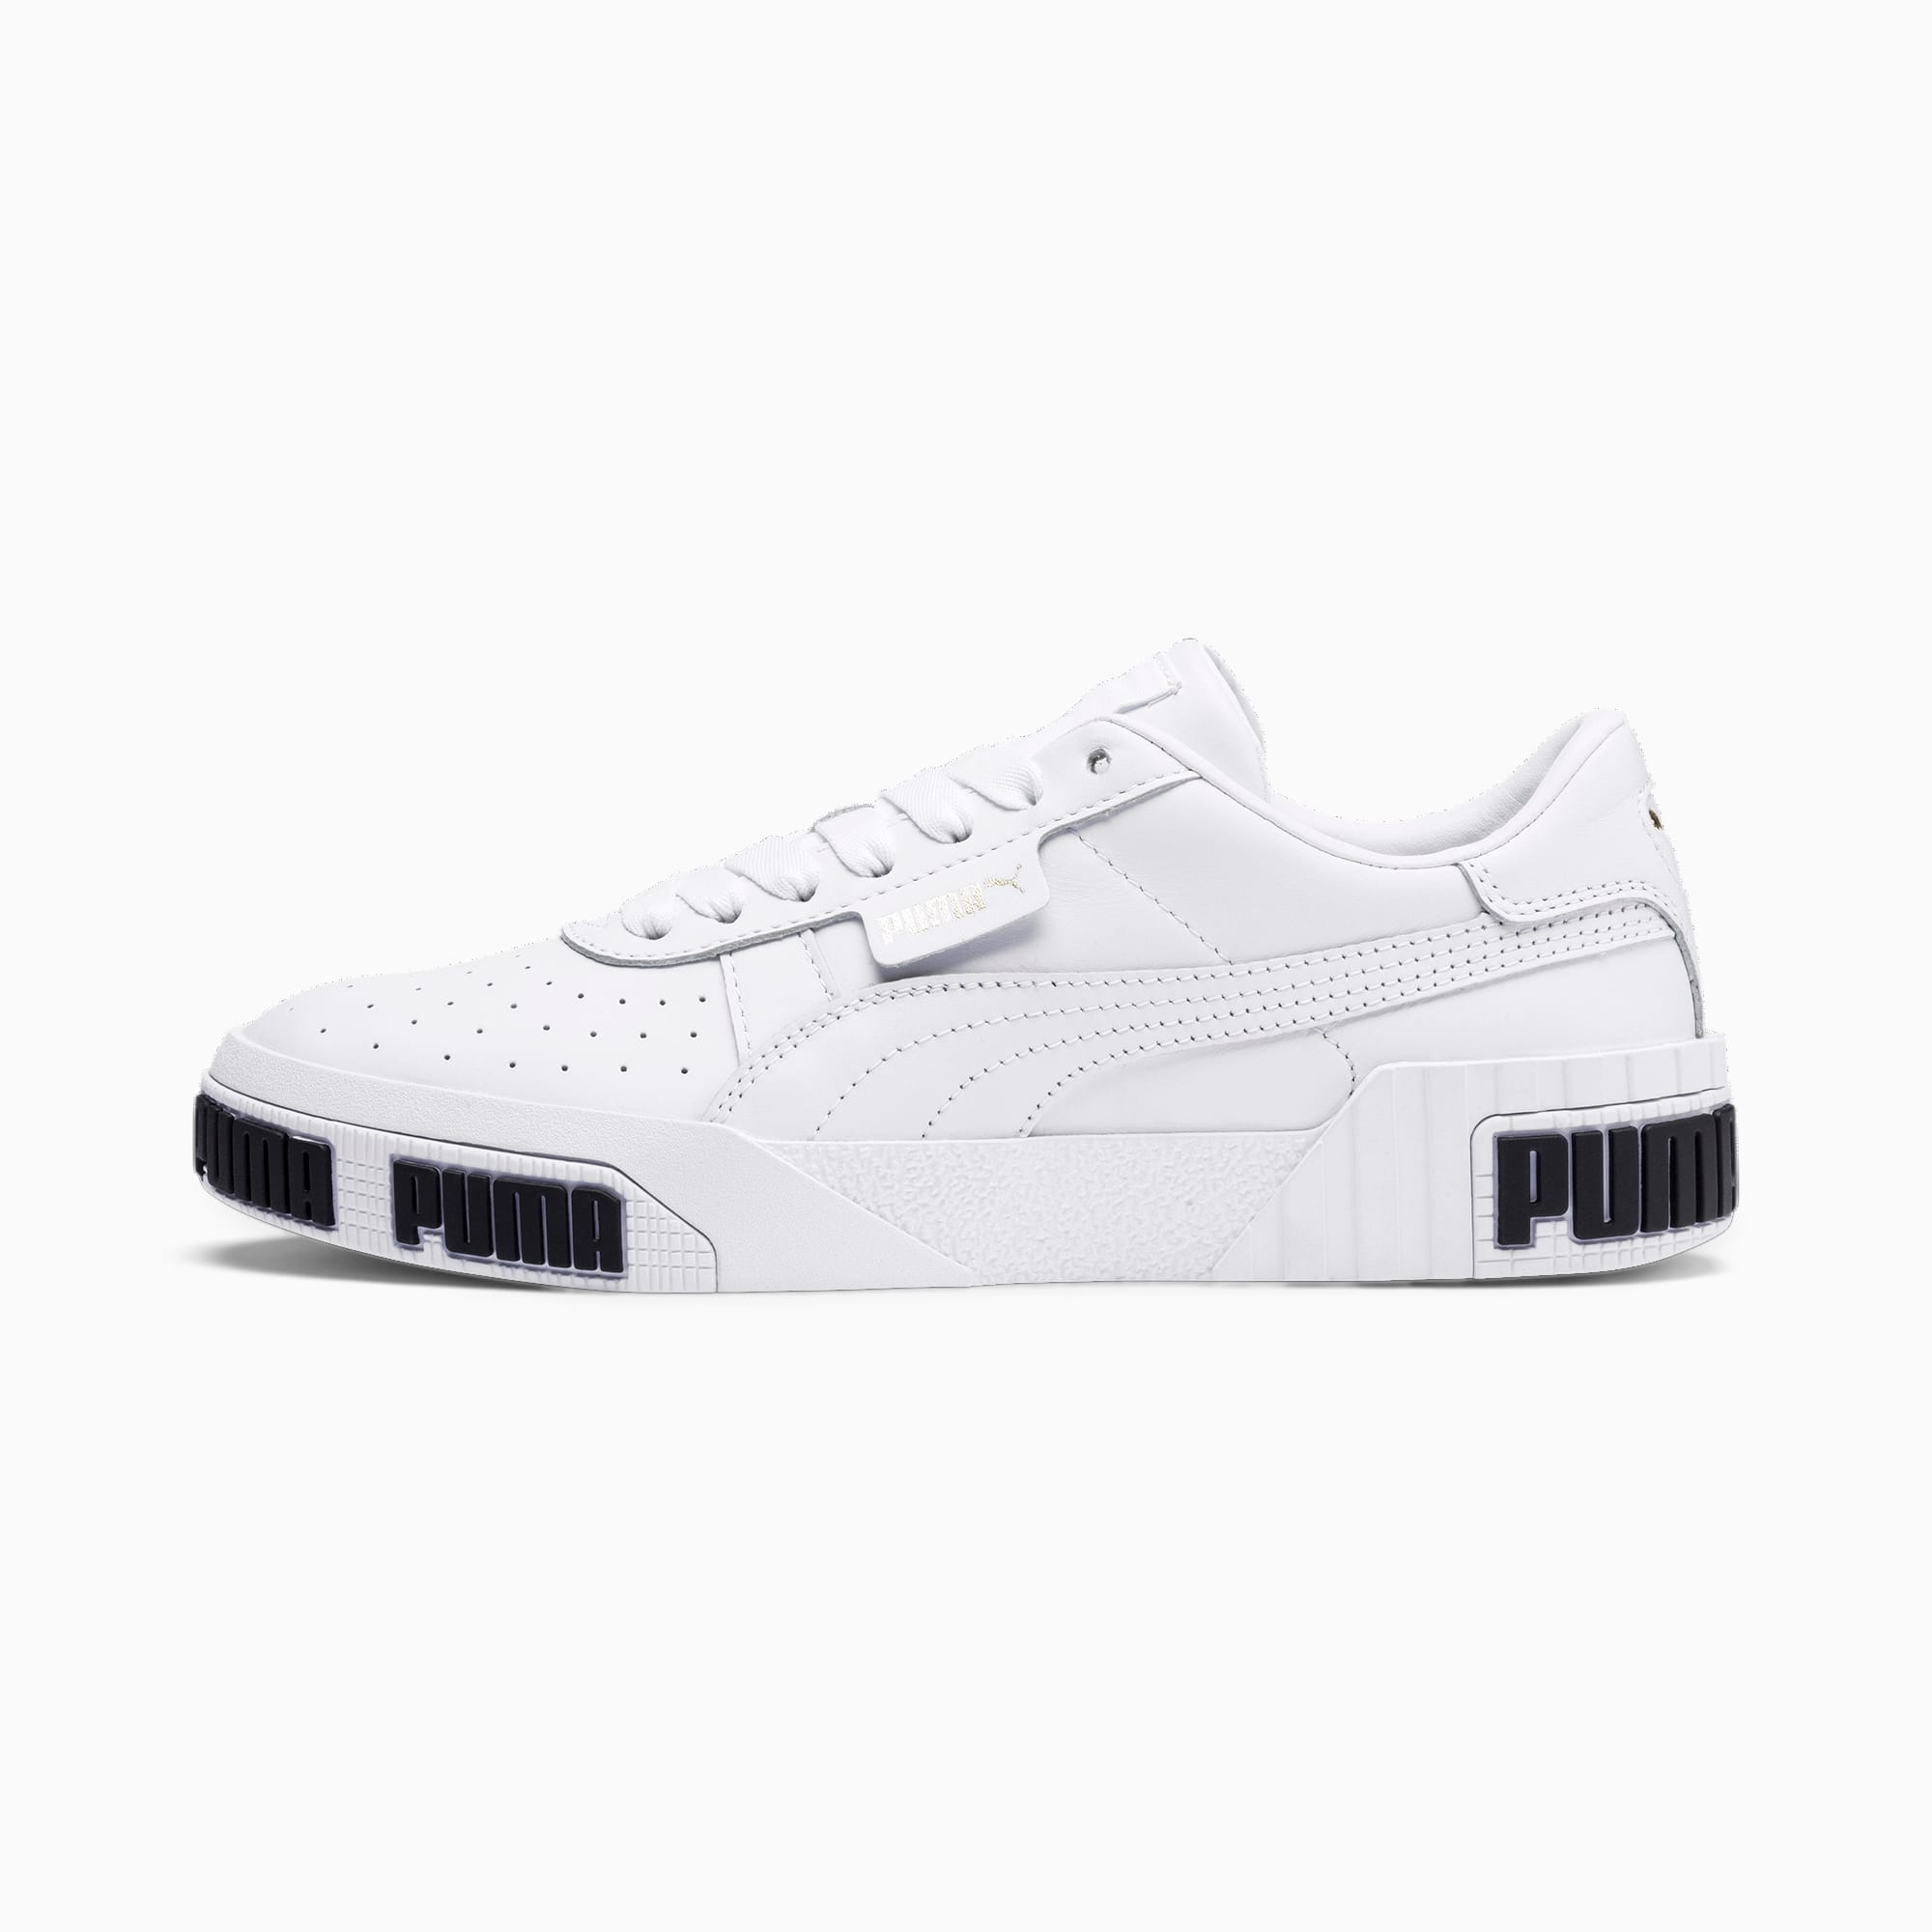 Sneakers | Cozy Puma Schuh Court Star Velcro Sneaker White